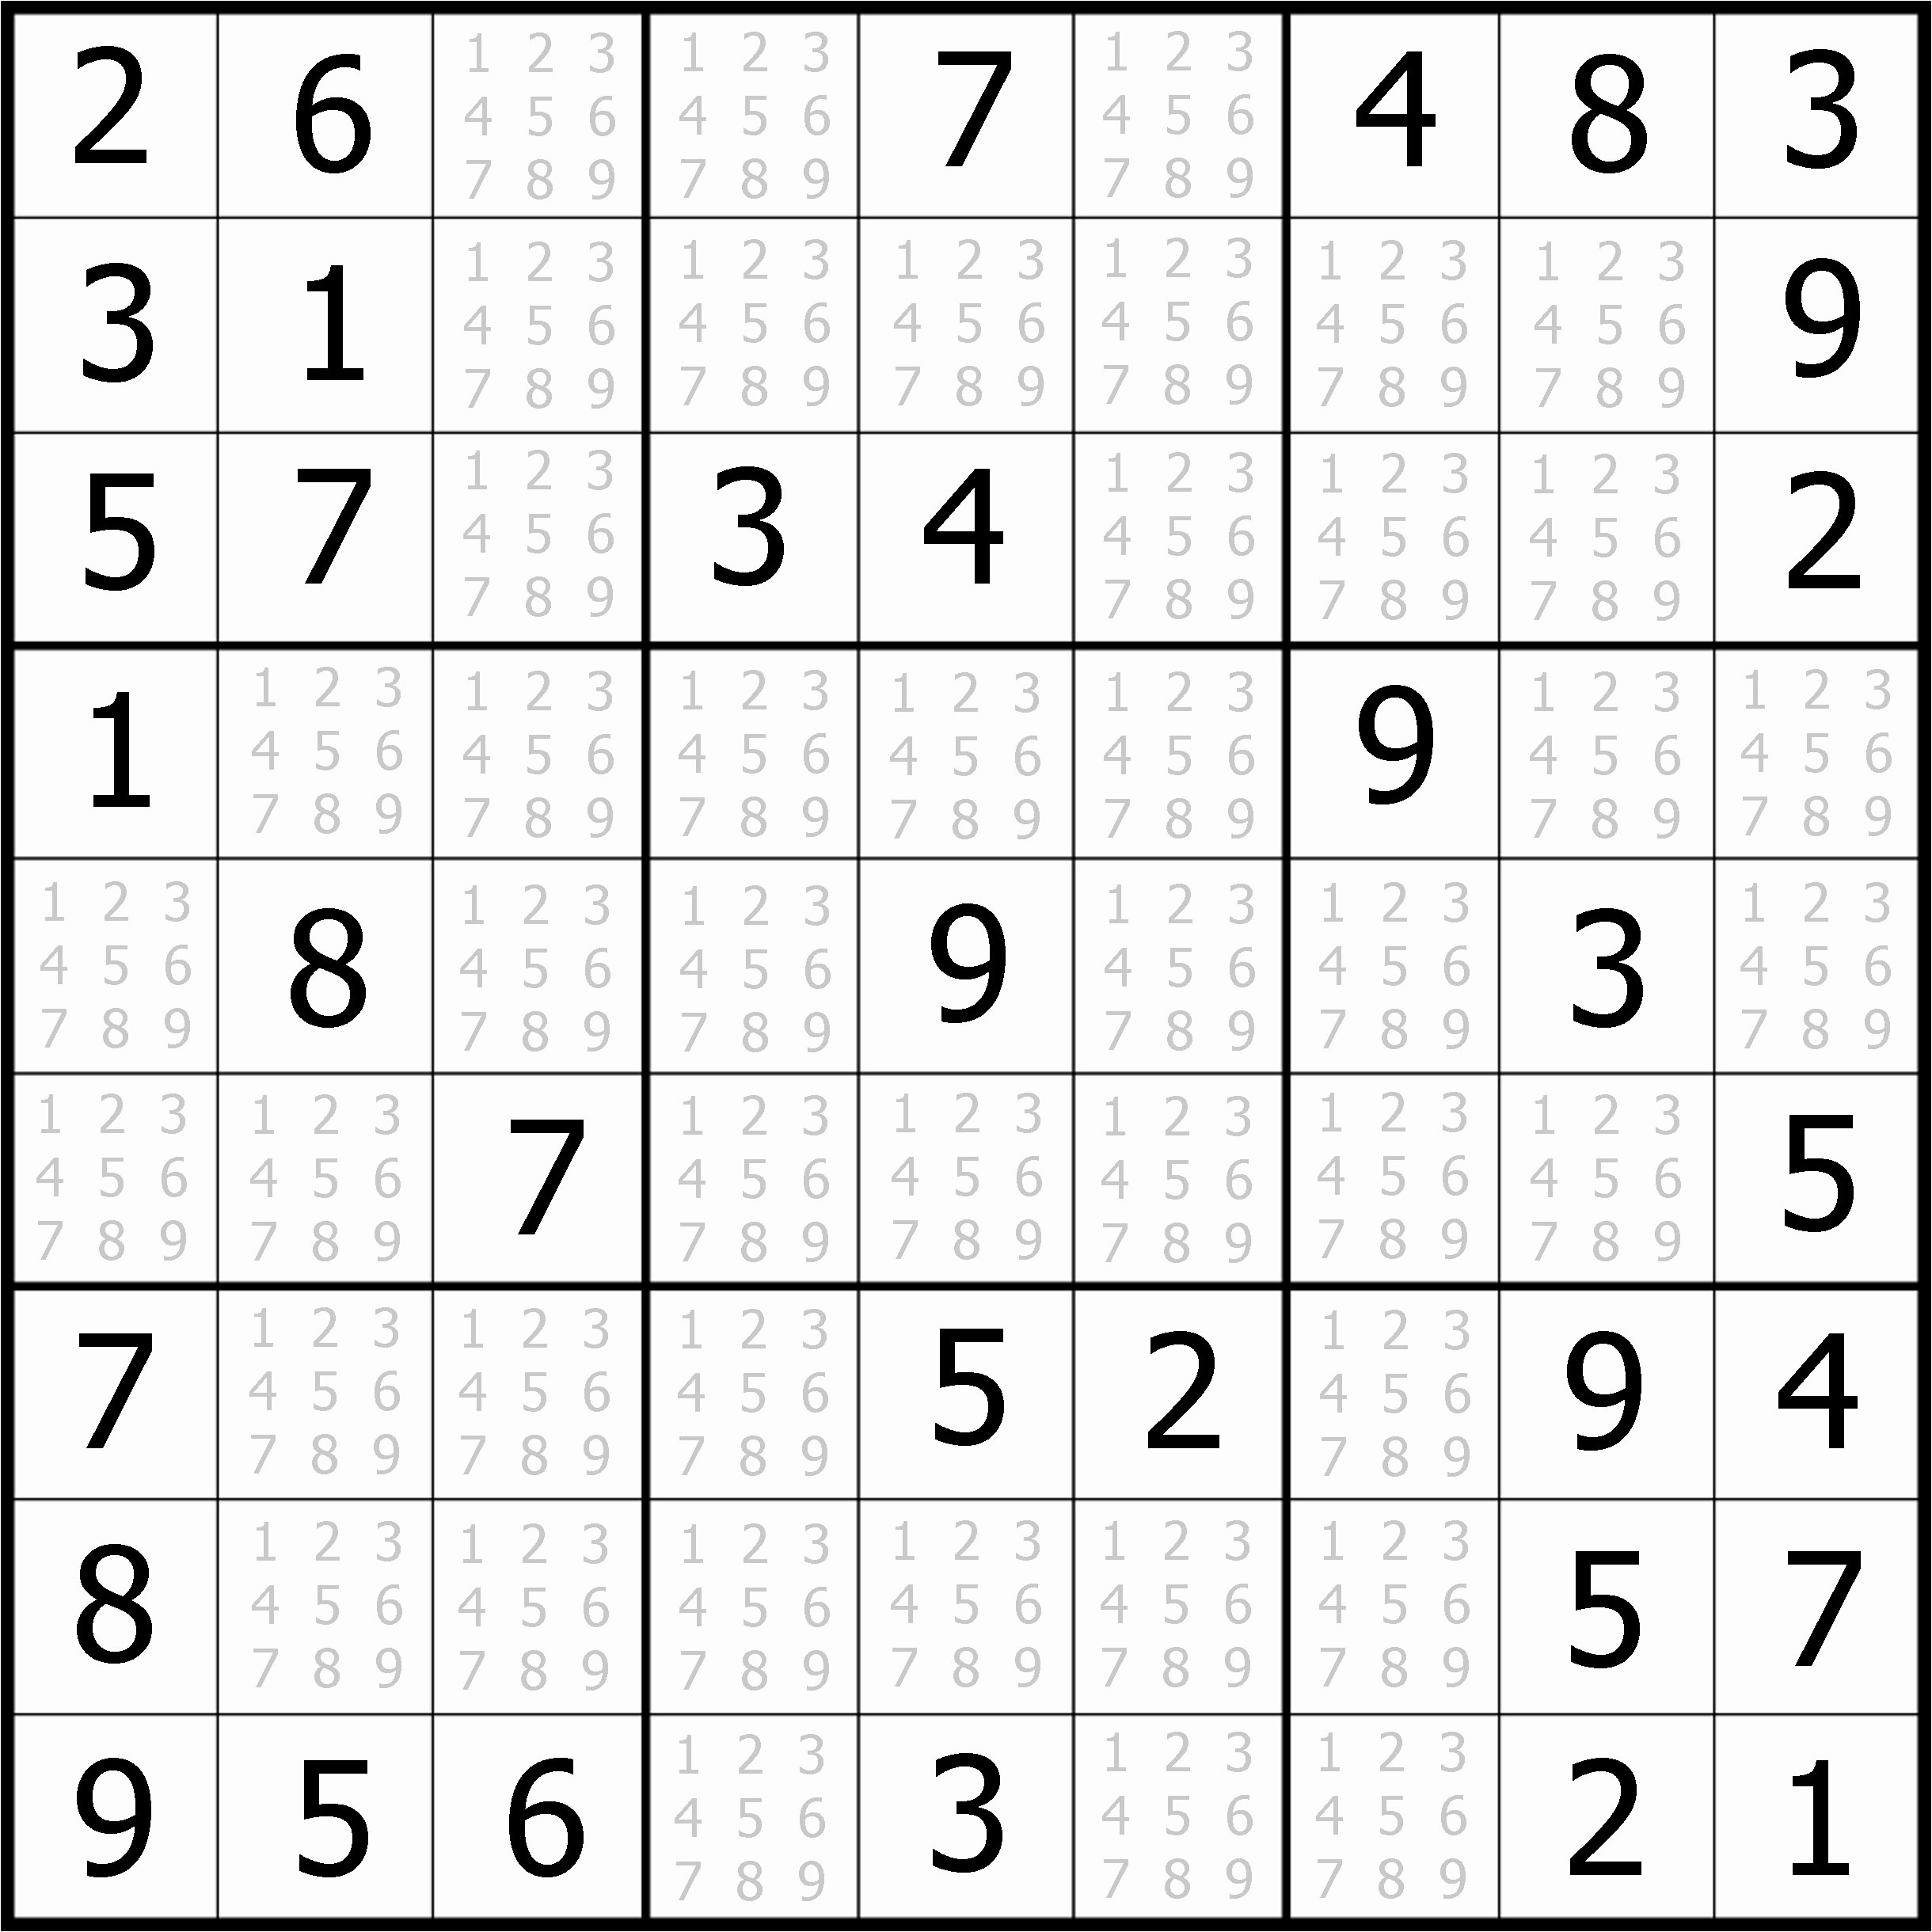 Easy Sudoku Puzzles To Print Free Download Featured Sudoku Puzzle To - Free Printable Sudoku Puzzles